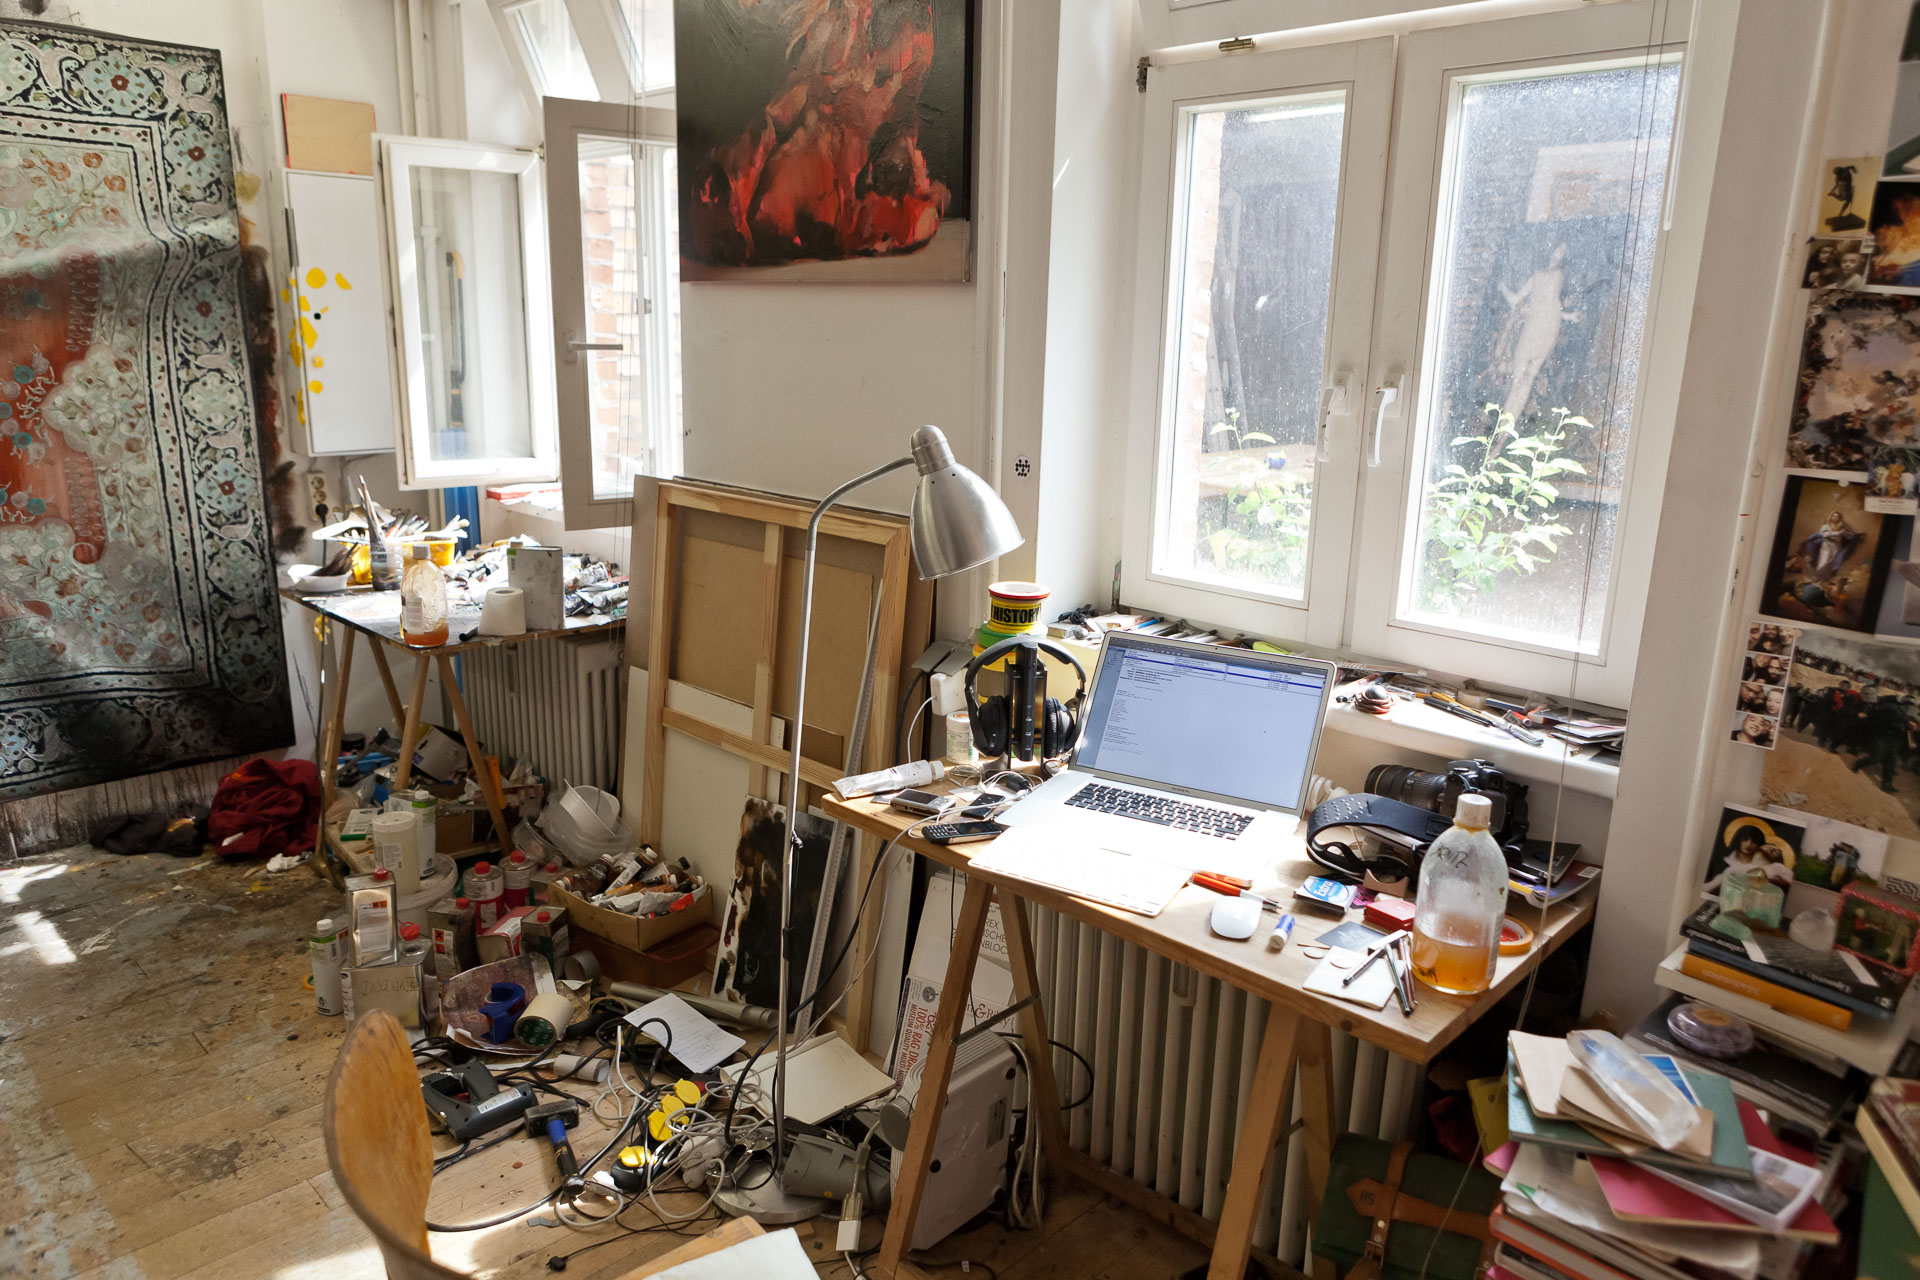 Antonio Santin, Painter in his studio in Berlin Wedding